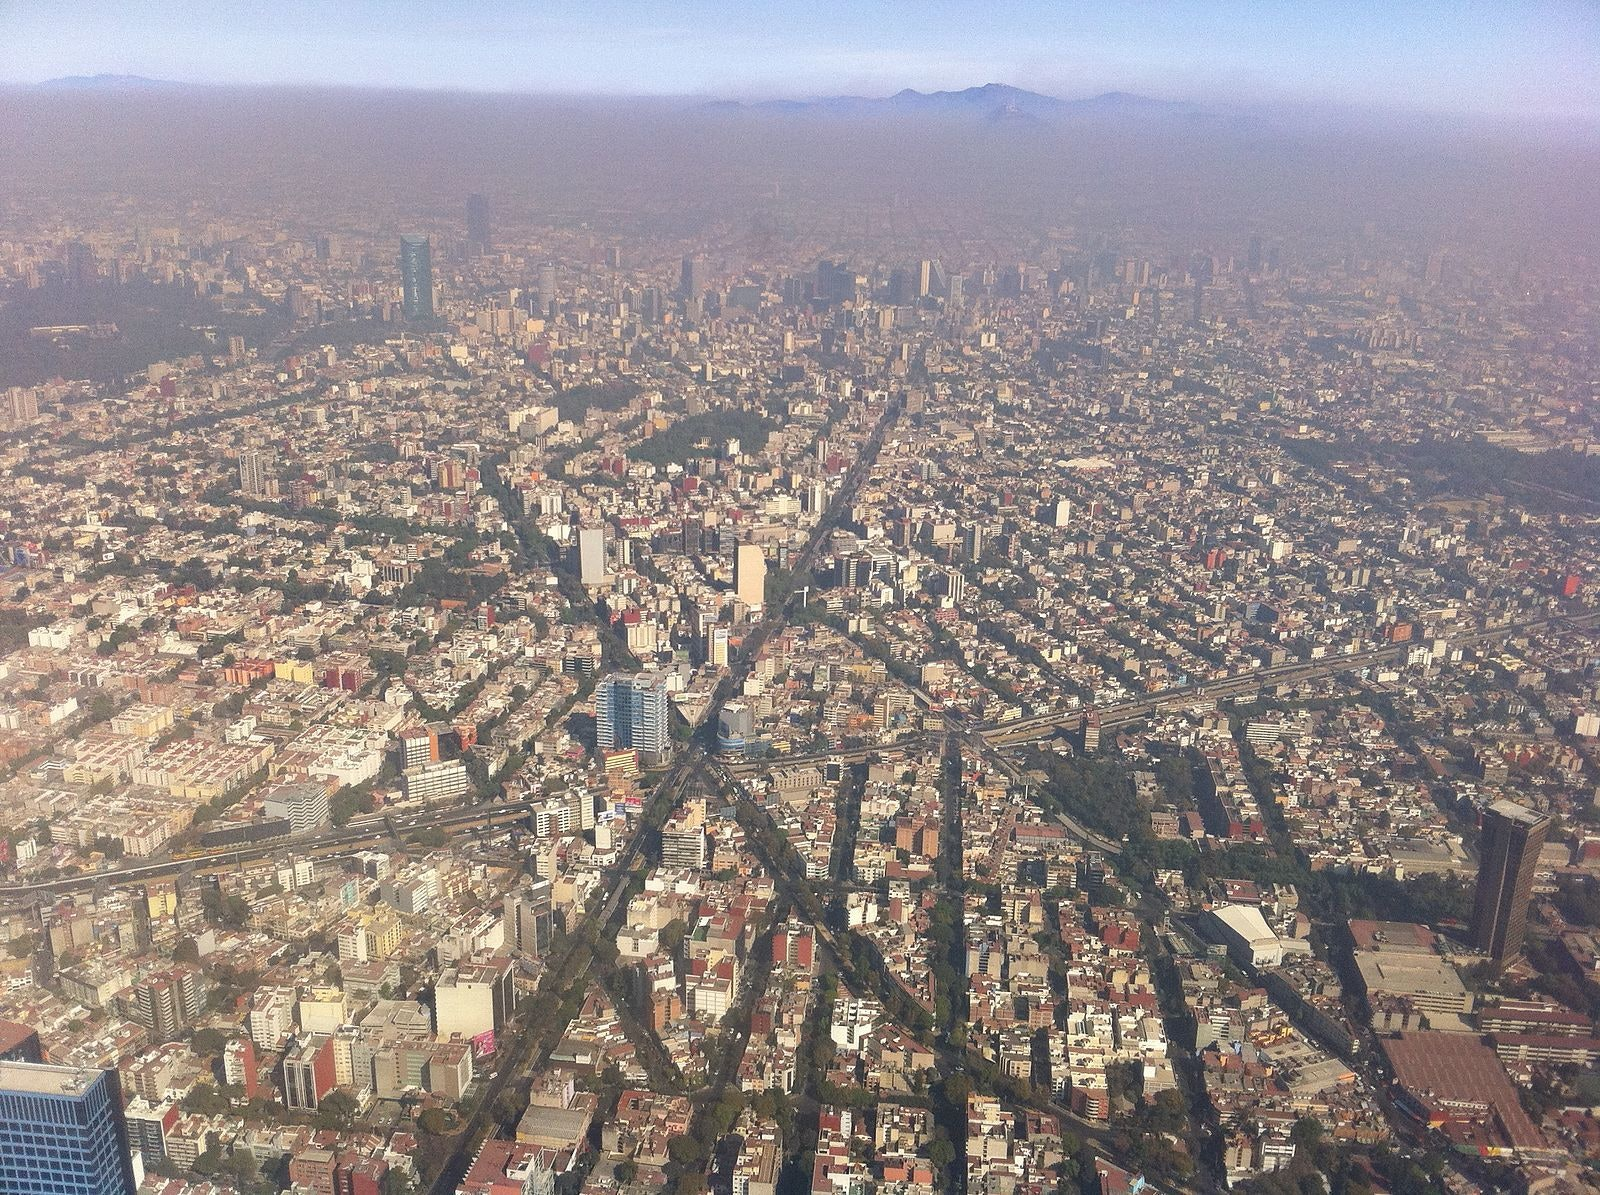 Mexico City aerial view streets construction parking crisis transportation